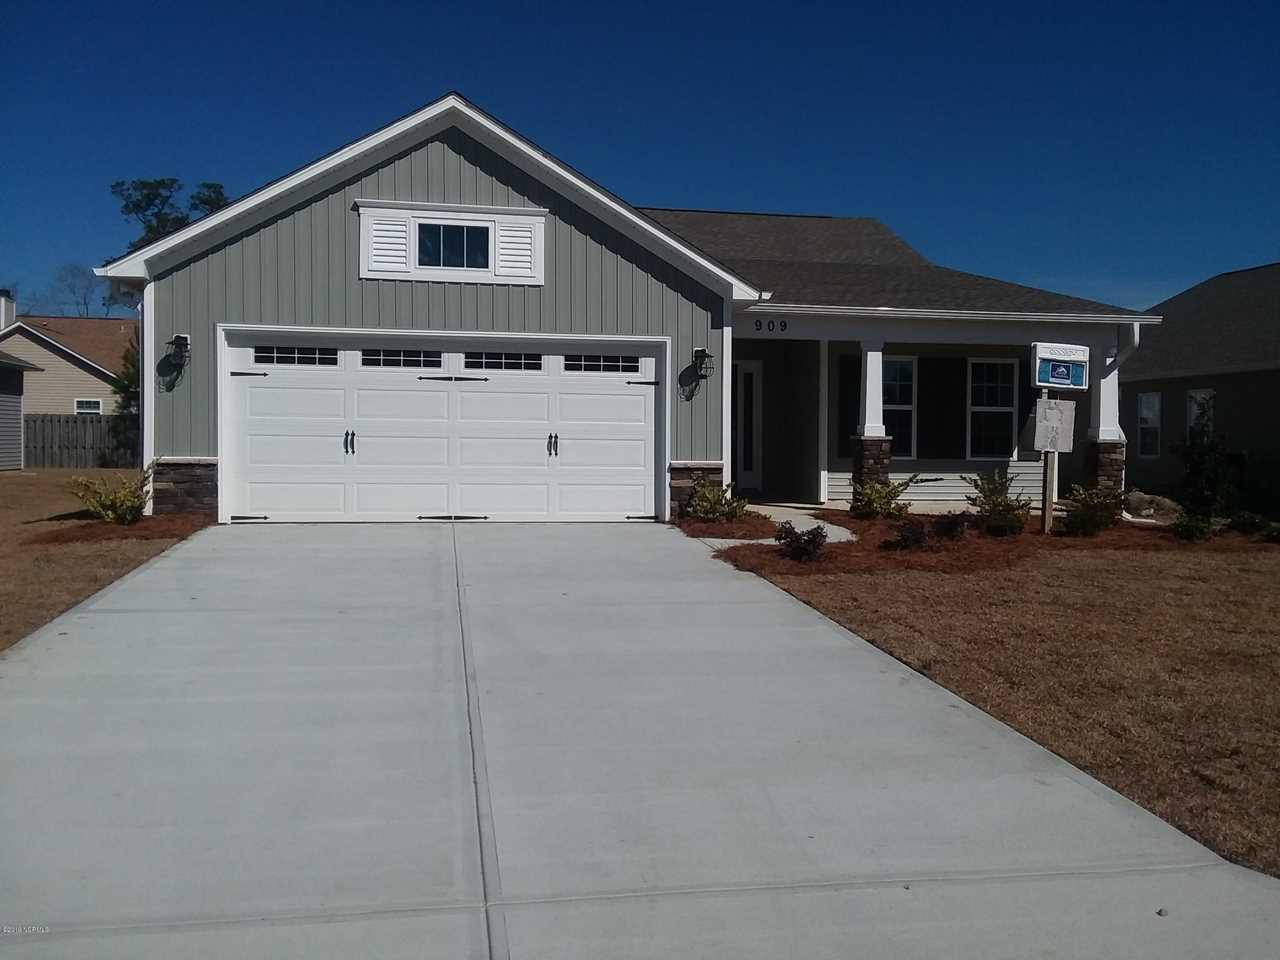 Home For Sale At 909 Rolling Pines Loop Road, Leland NC in Lanvale Forest Photo 1